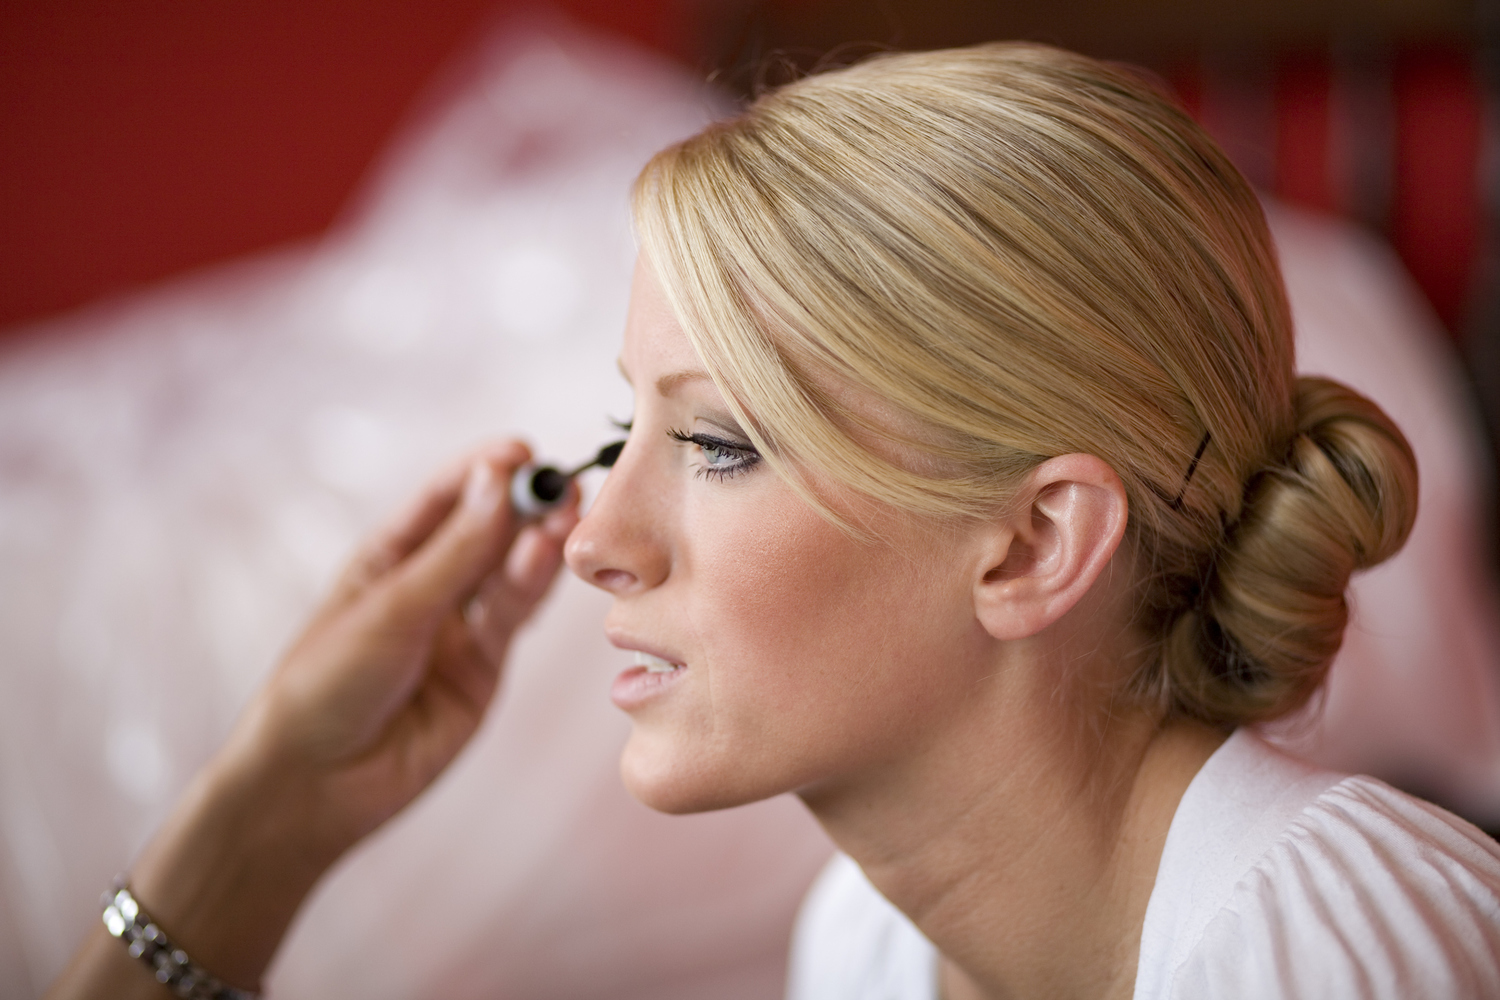 bridal artistry kansas city // on-site wedding and special event